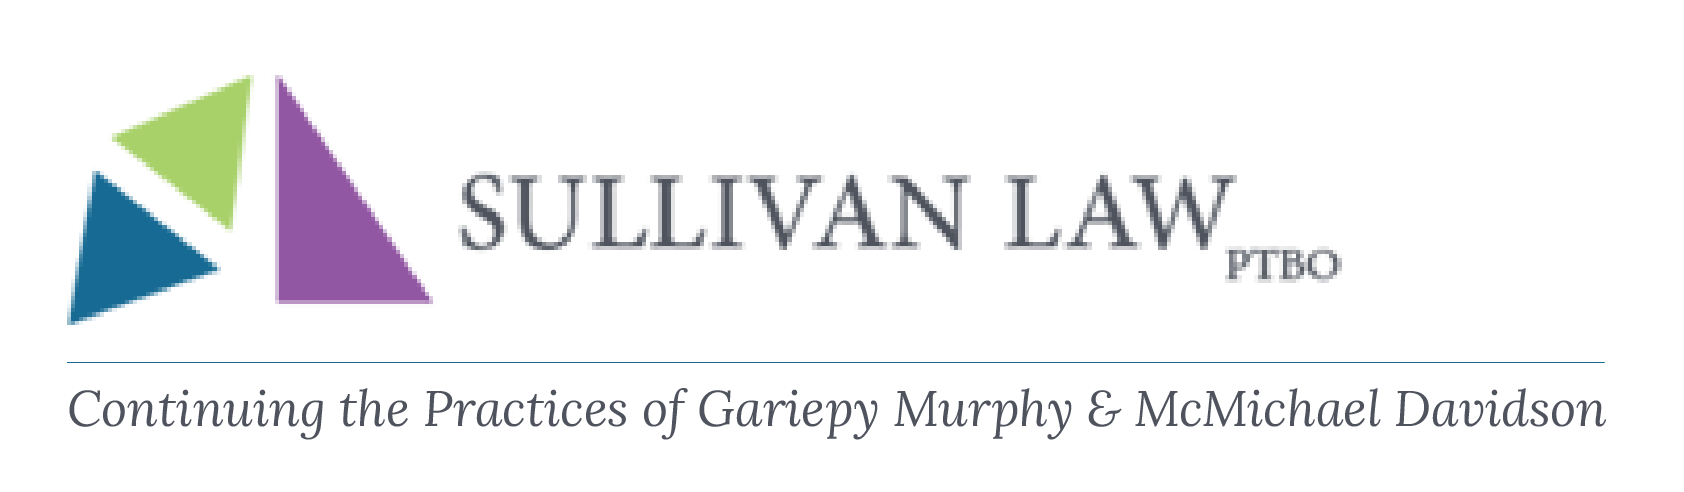 Sullivan Law Logo